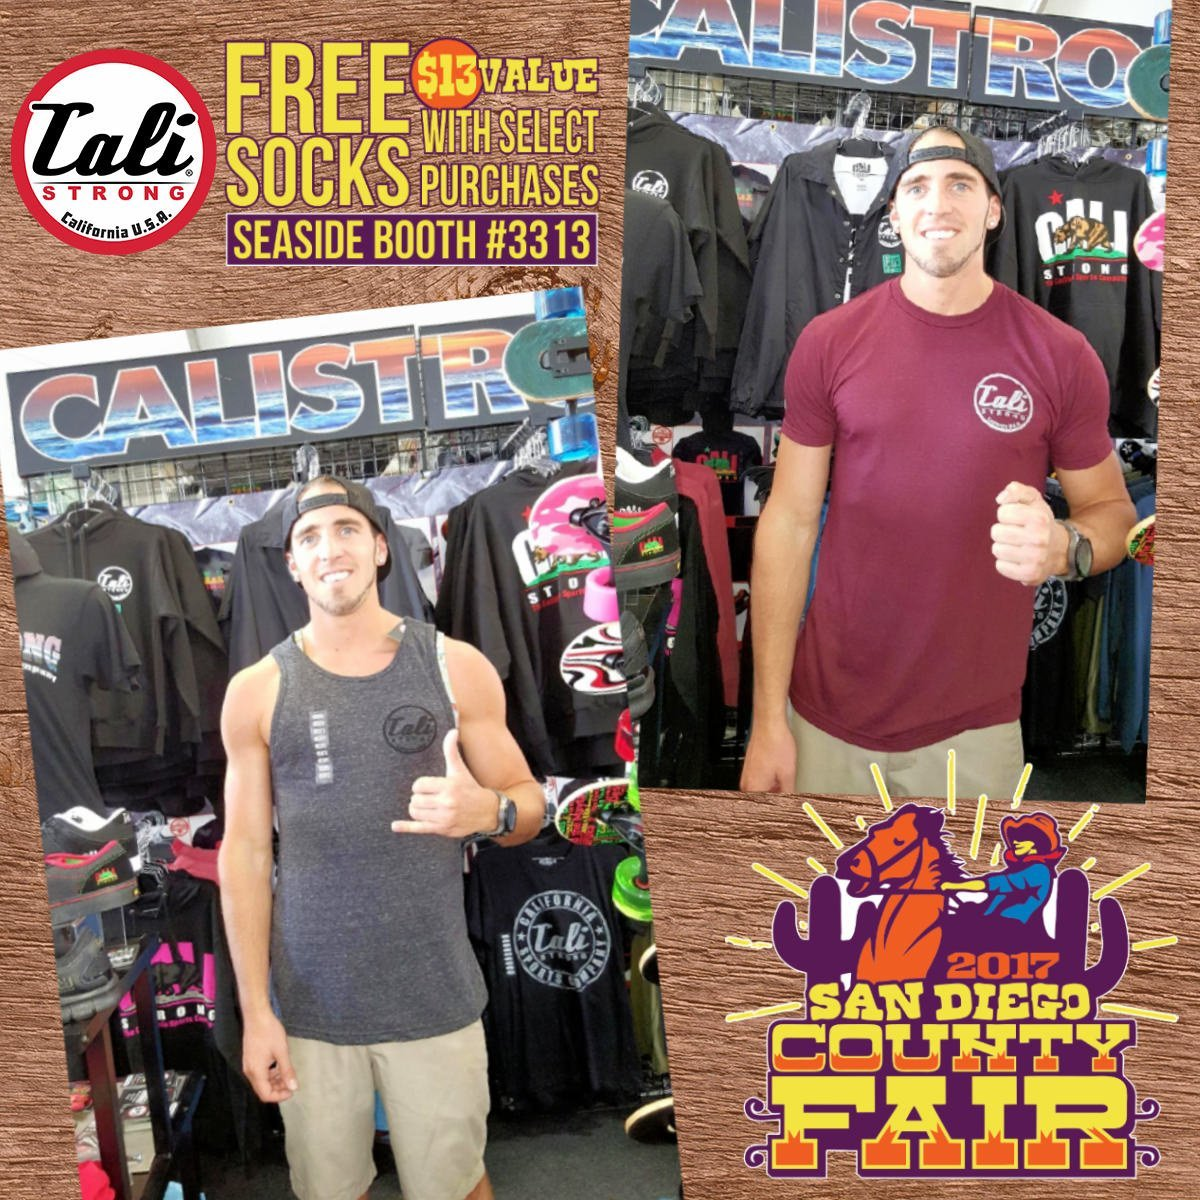 Jake Kiefer who works at Play It Again Sports (Pacific Beach) visited CALI Strong at San Diego County Fair Seaside Booth #3313